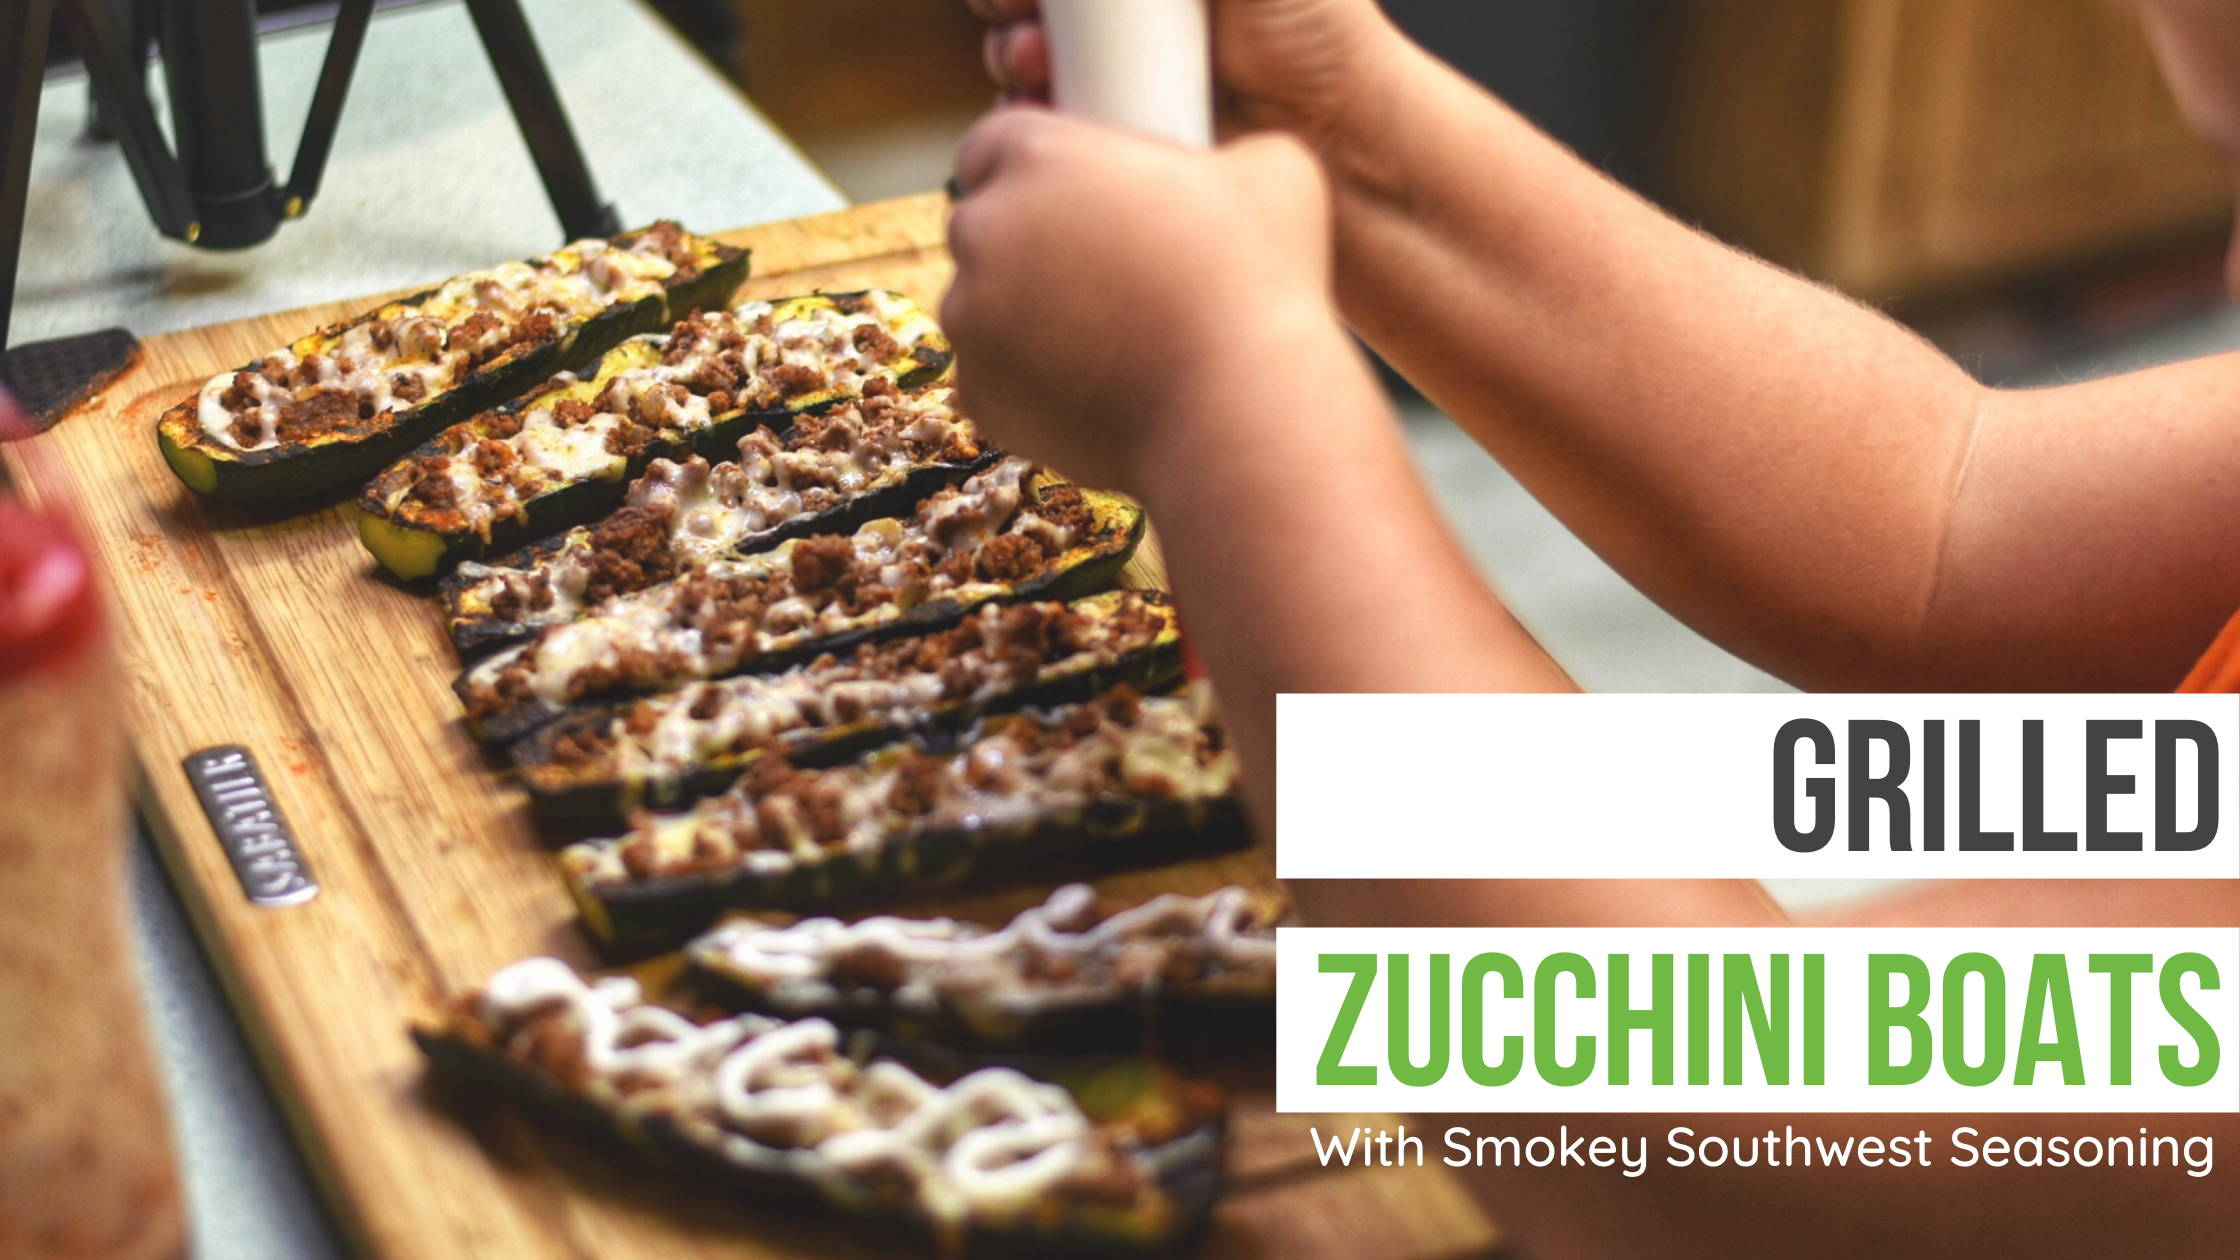 Grilled zucchini boats with Smokey Southwest Seasoning